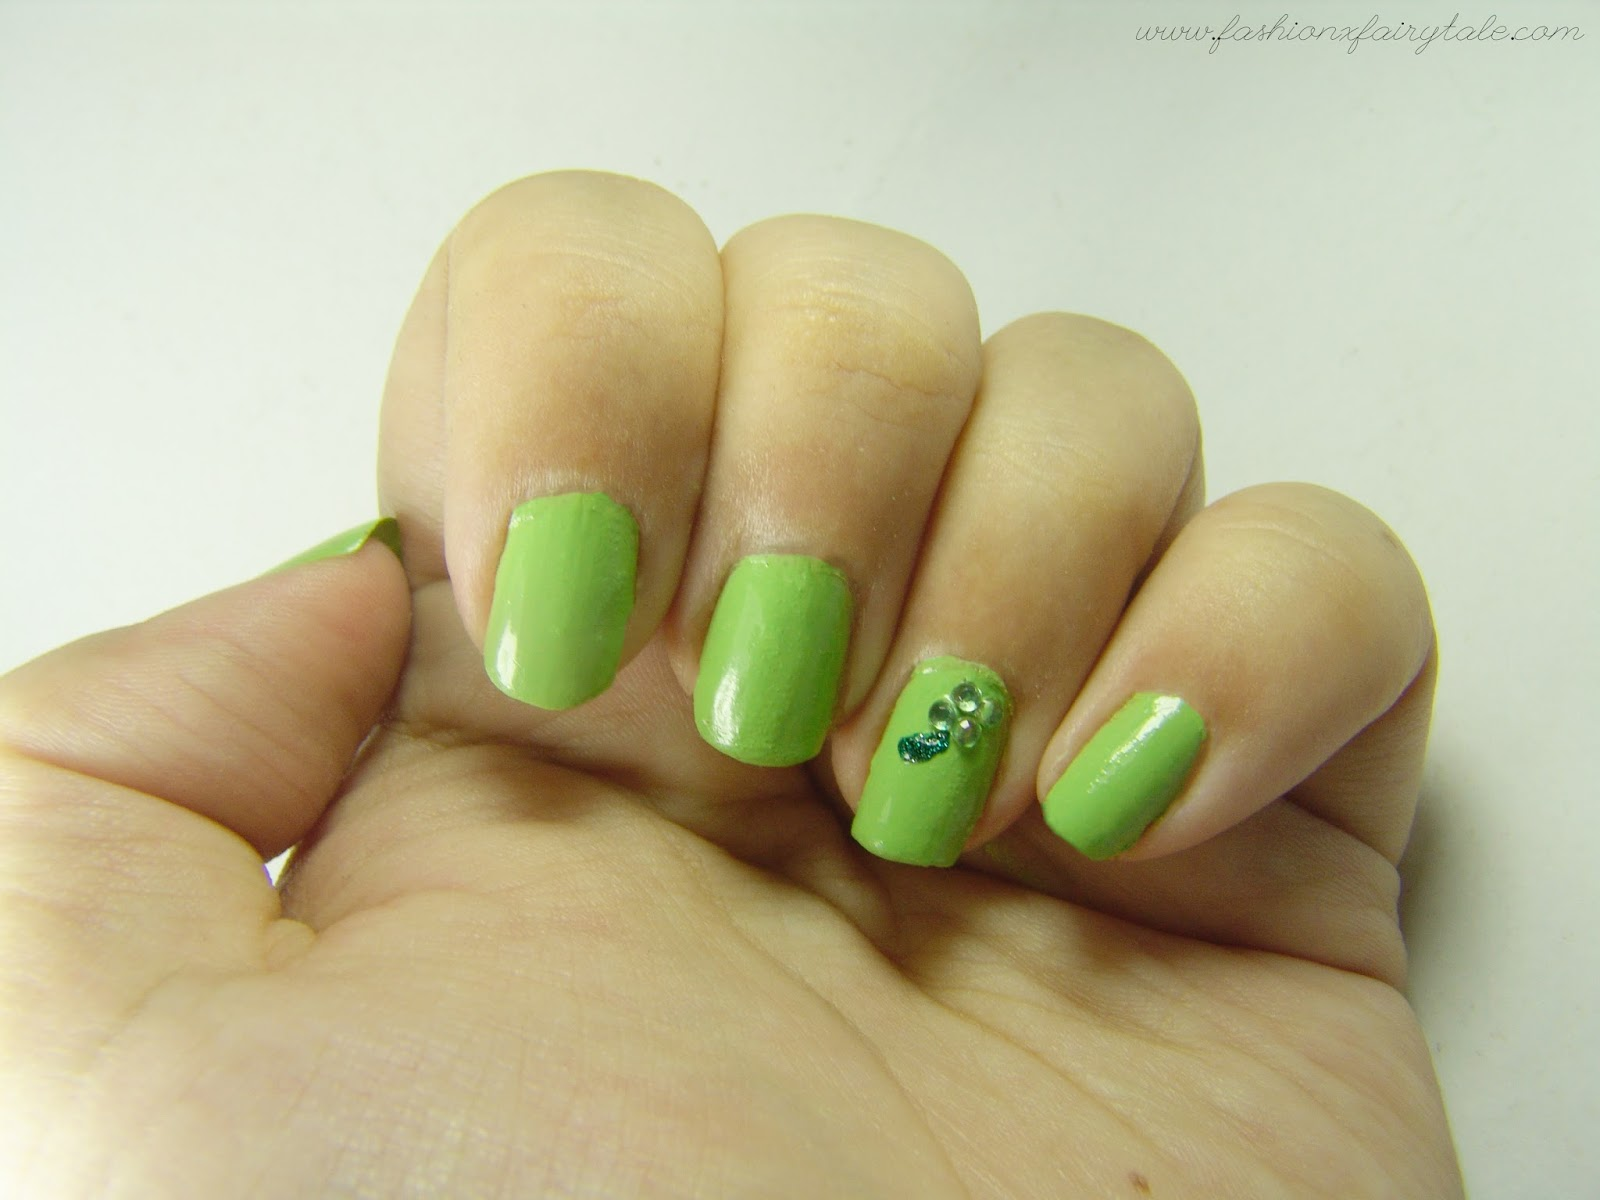 Nails | Four Leaf Clovers Bring Good Luck